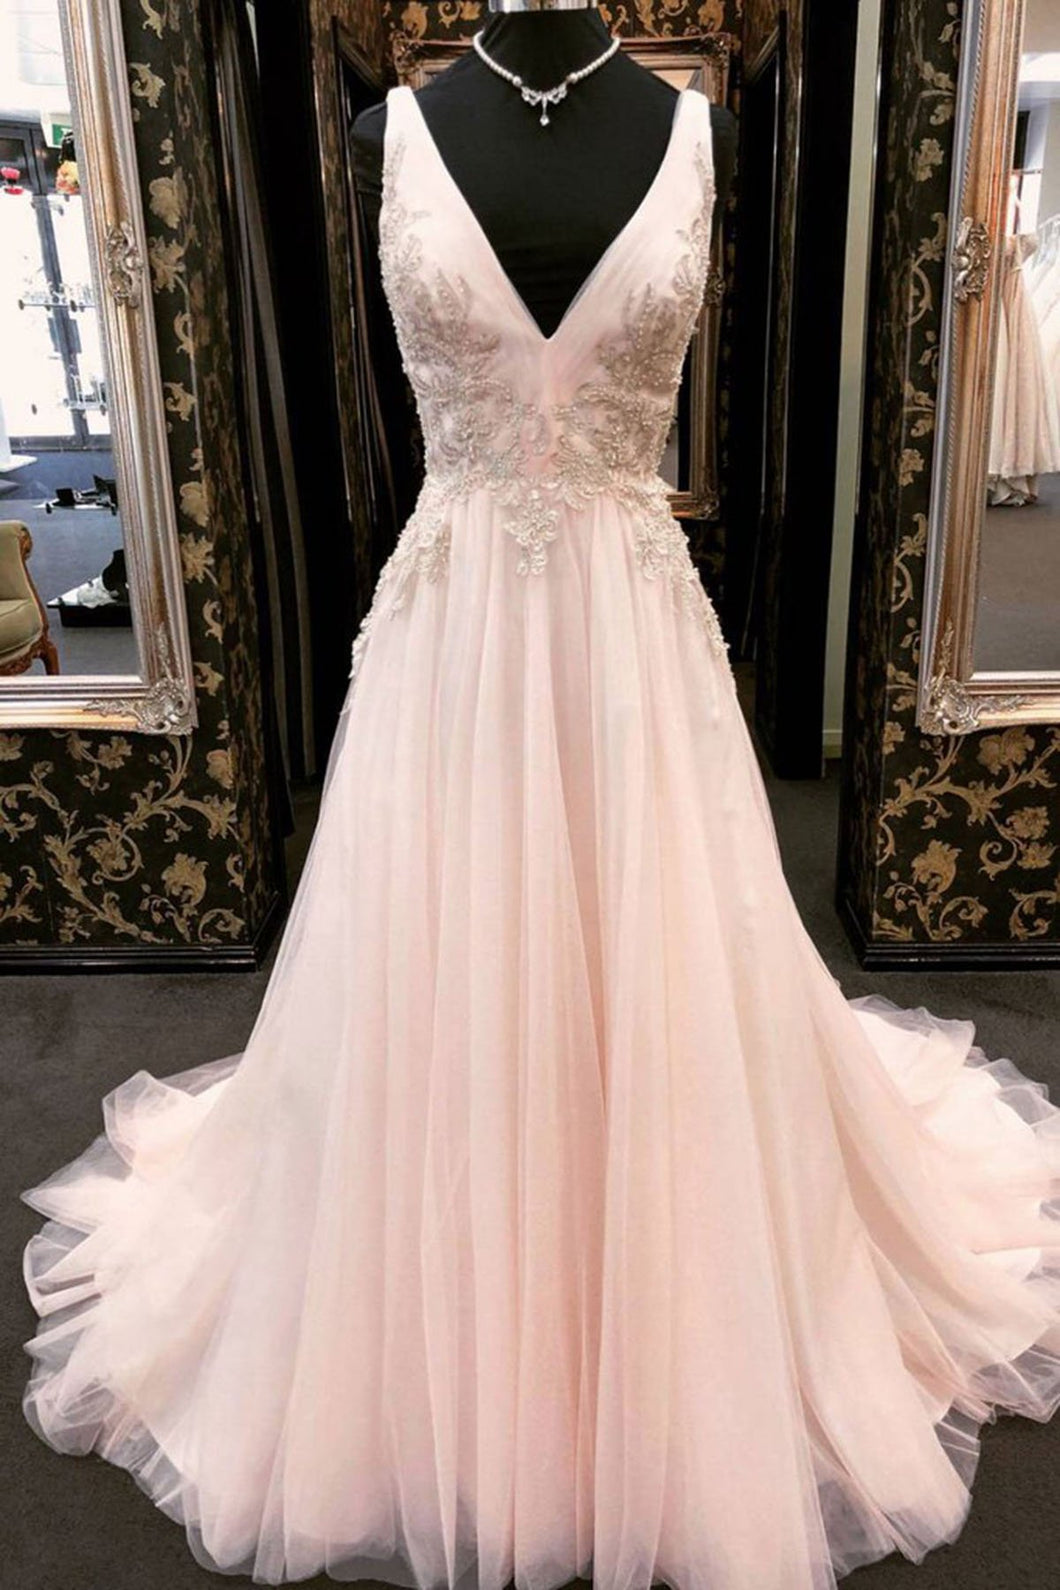 2019 Prom Dresses | Blush pink tulle V neck long sweet 16 prom dress with lace applique